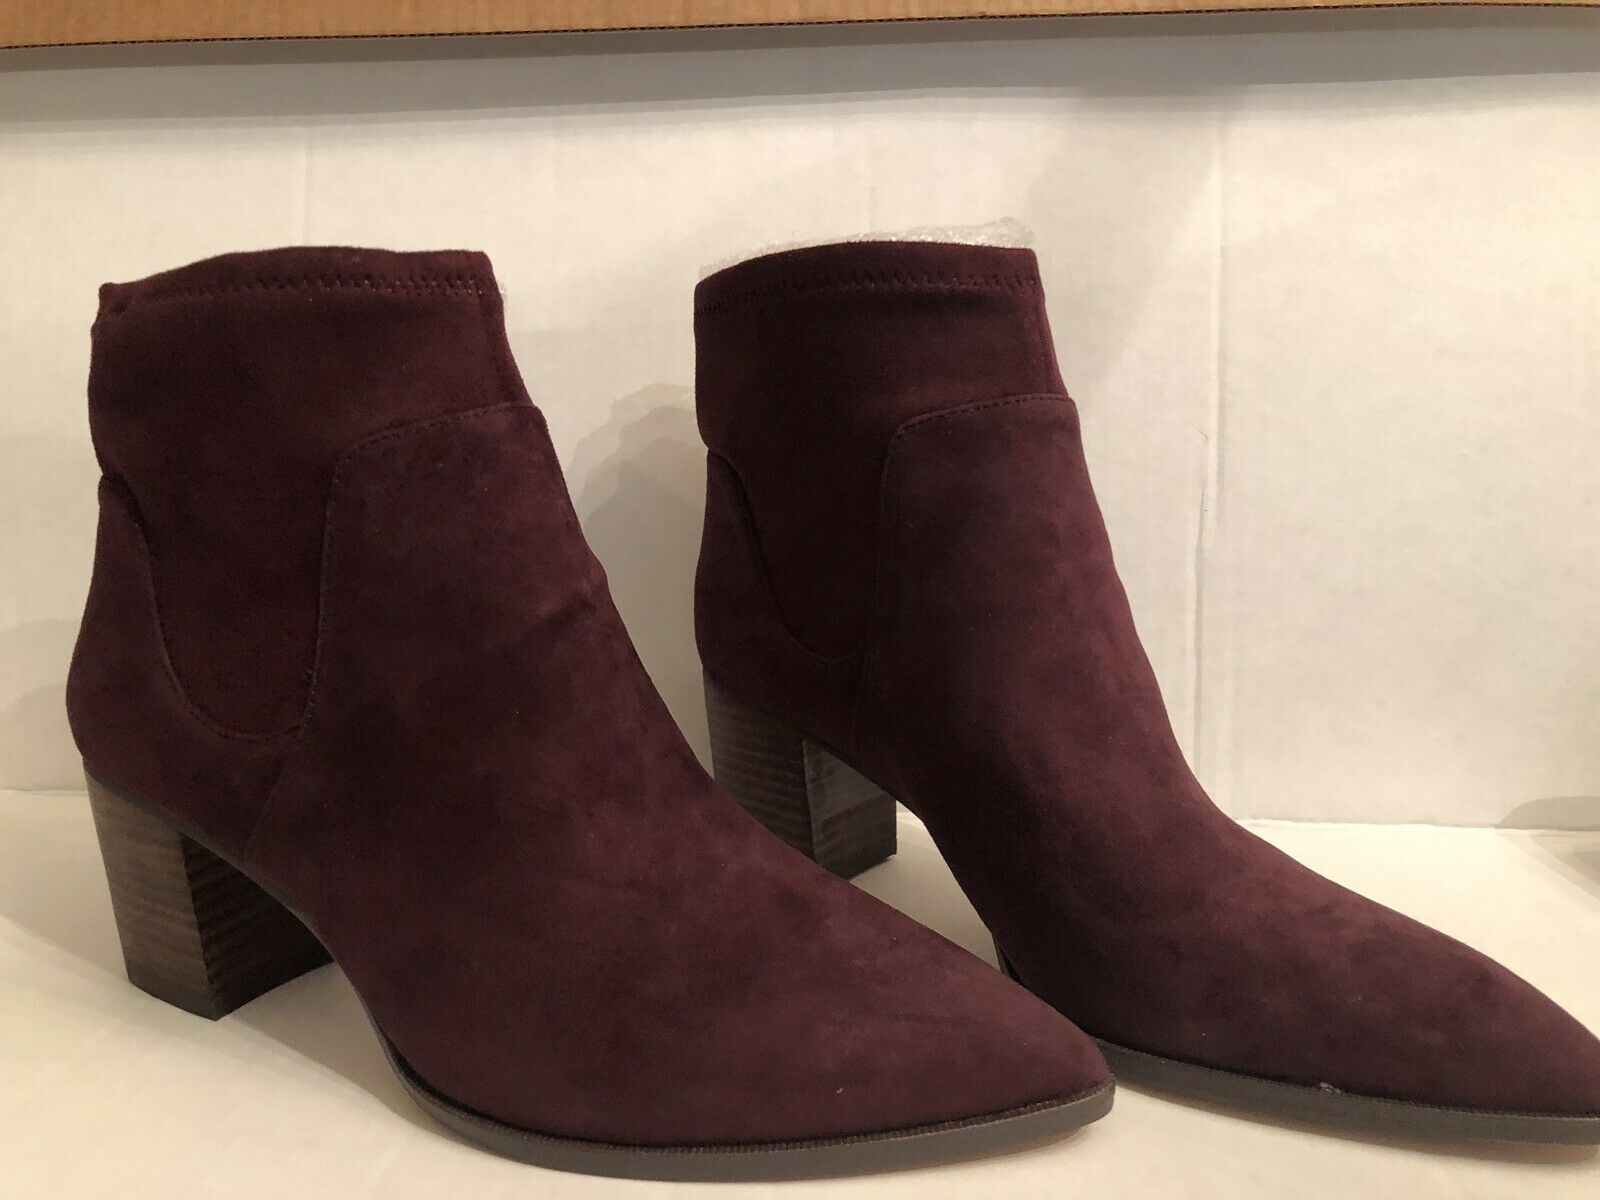 """Sole Society 8 1 2M Ankle Boots Bordeaux Suede 2"""" Heel NWT"""